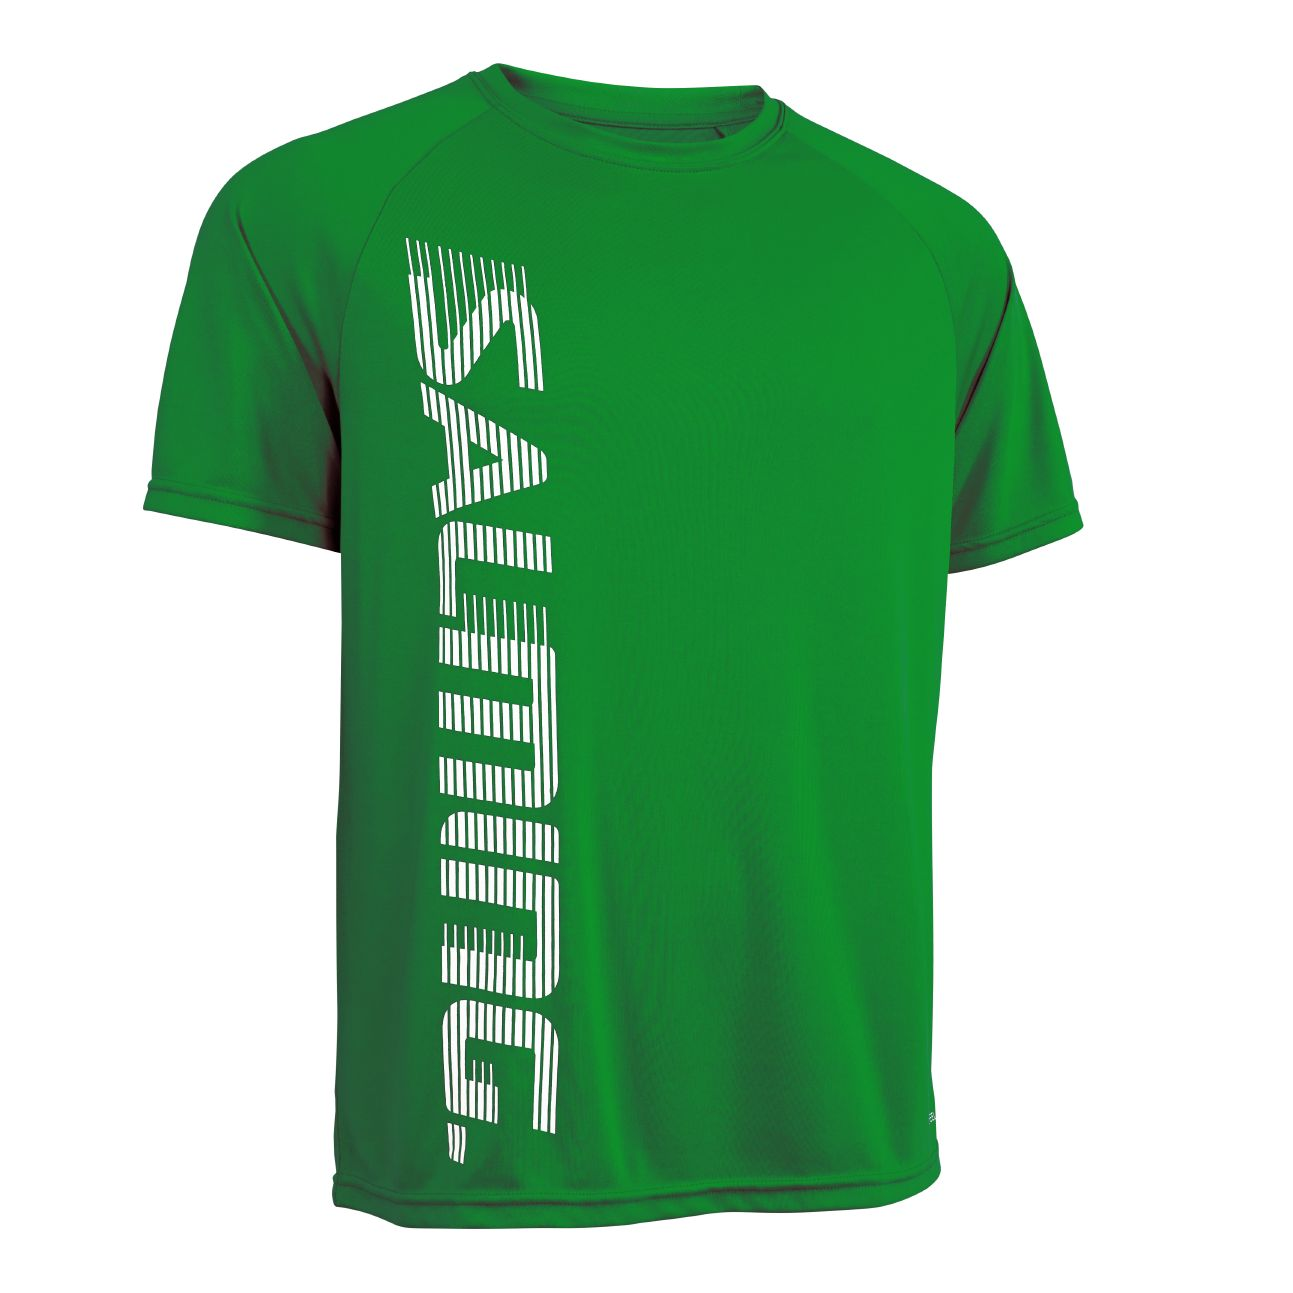 Salming Training Tee 2.0 Červená, XXXL